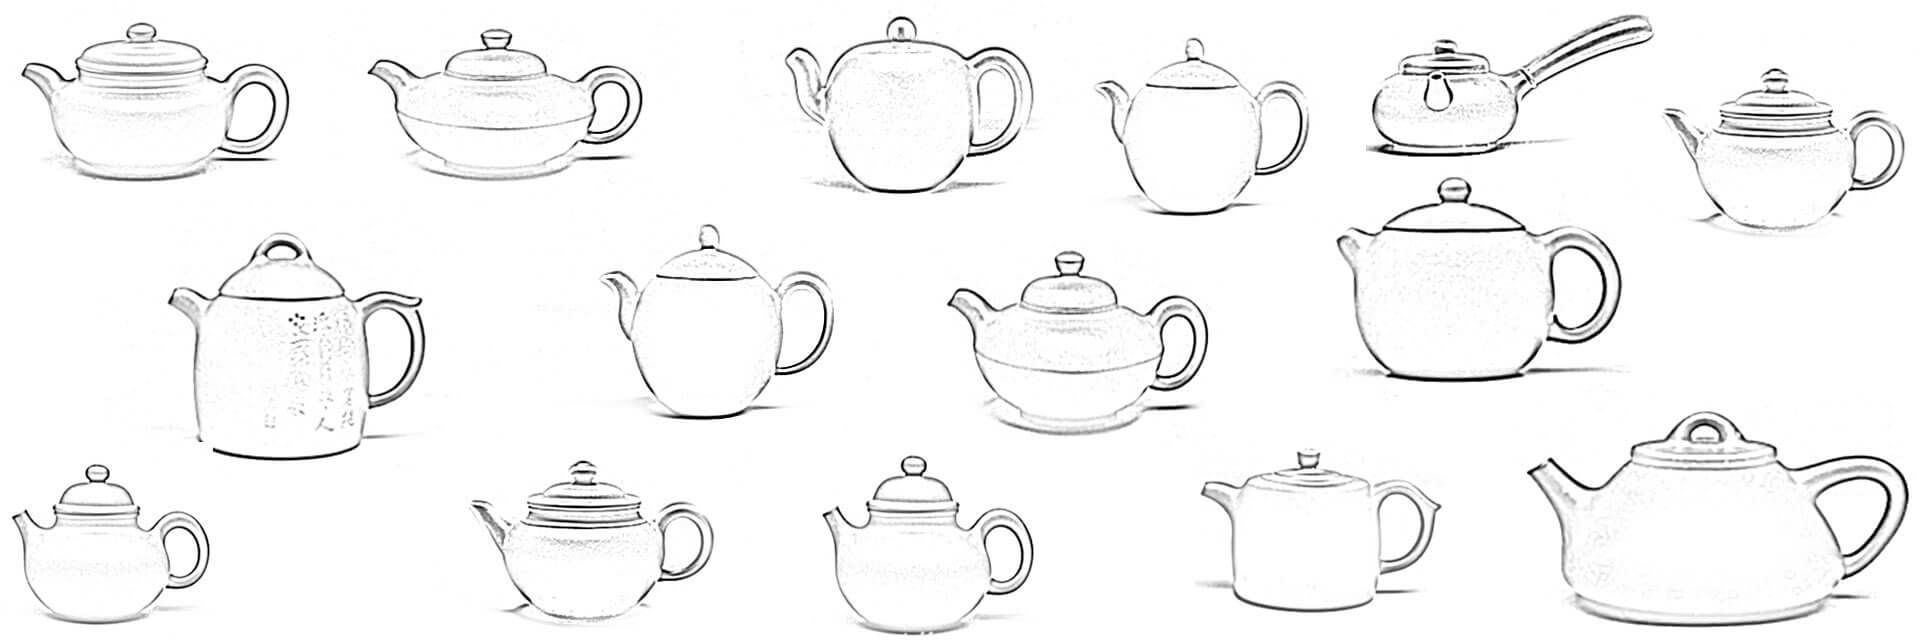 An Introduction to Teapot Shapes Ⅰ